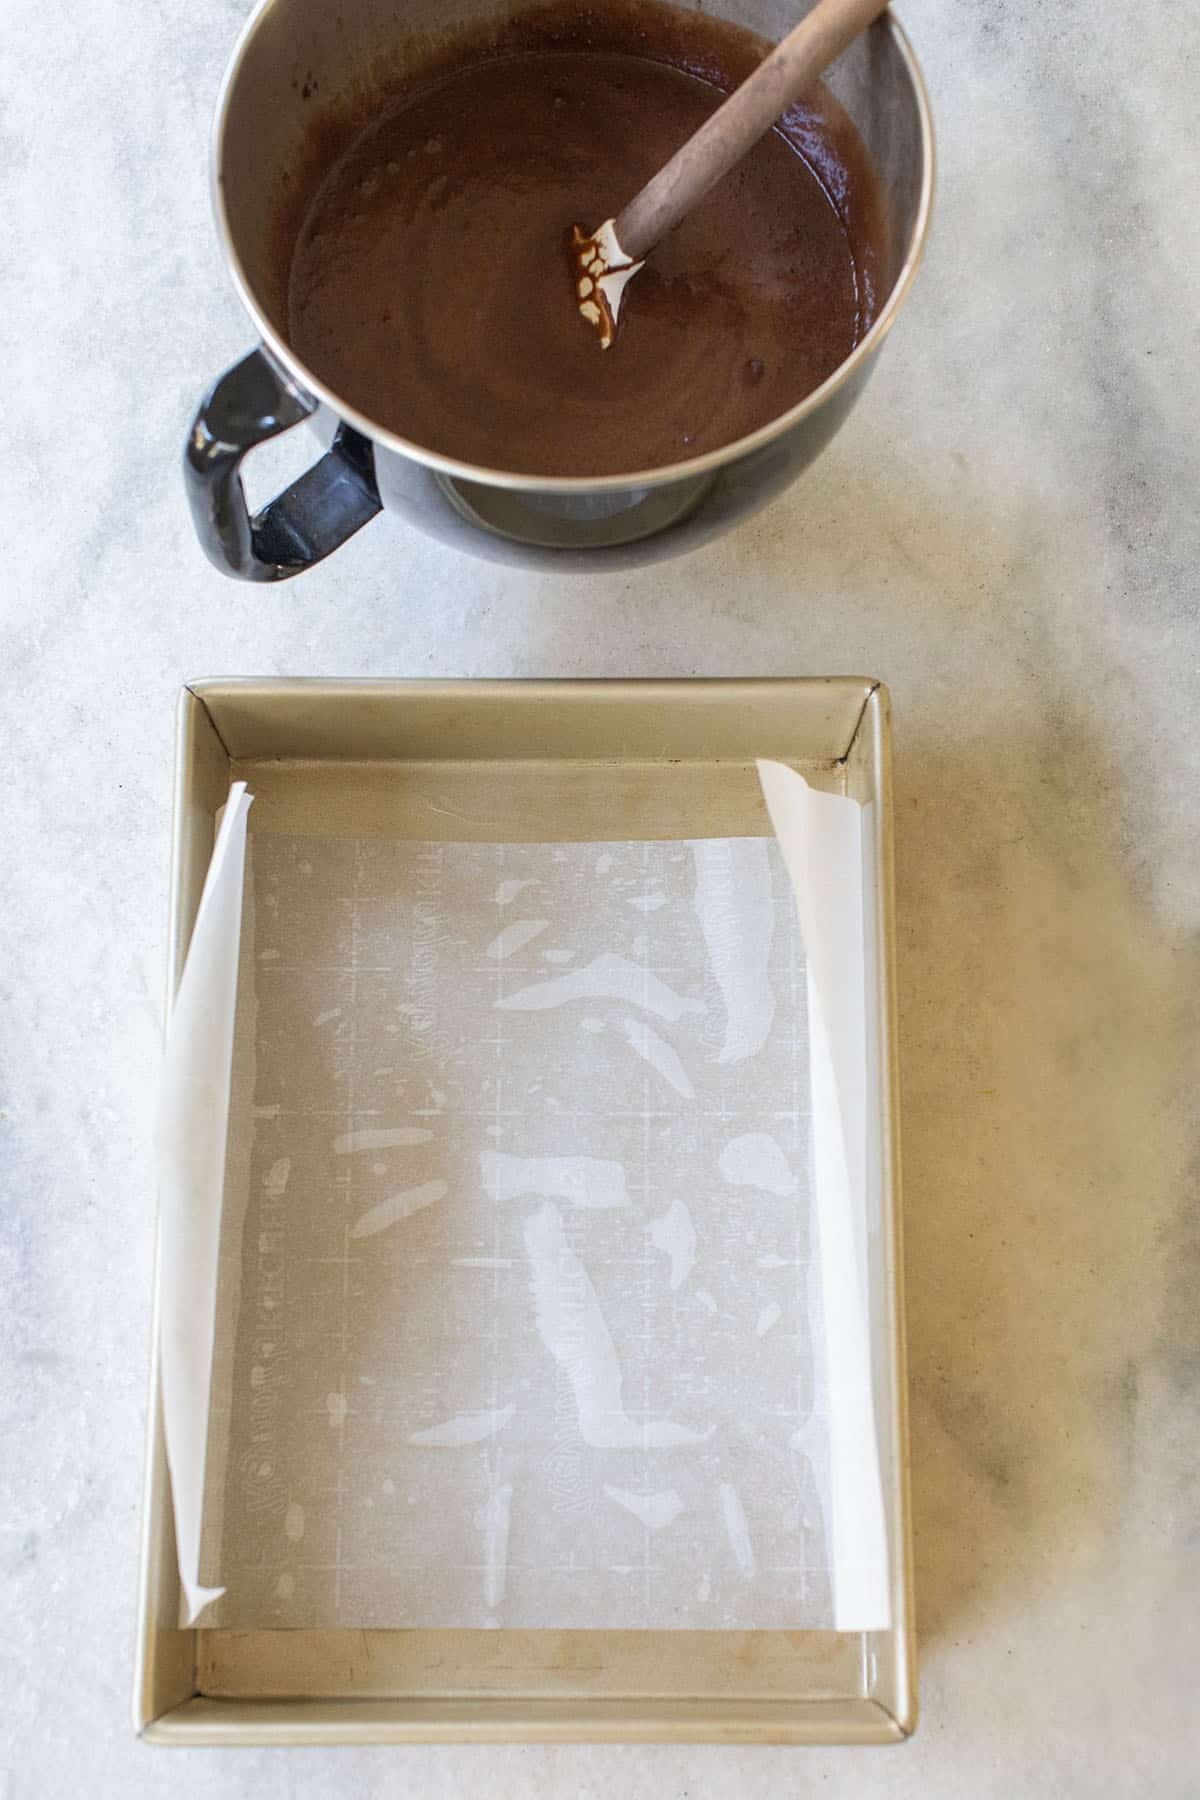 9x13 baking sheet and cake batter in a mixing bowl